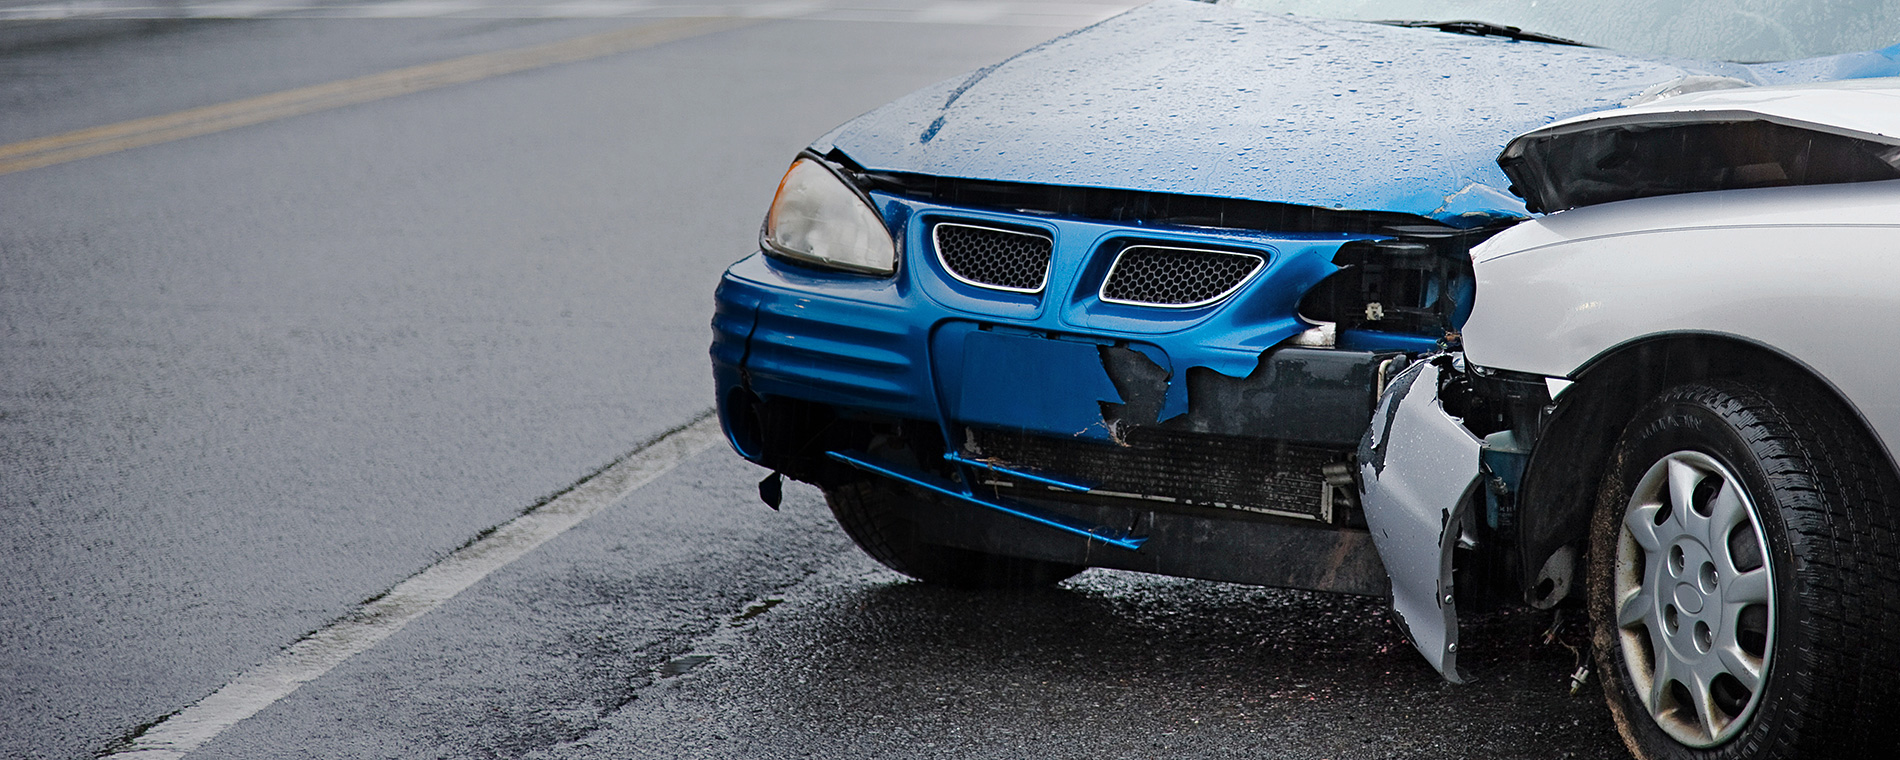 Signature Claim Service guarantee applies to claim service for physical damage to your car